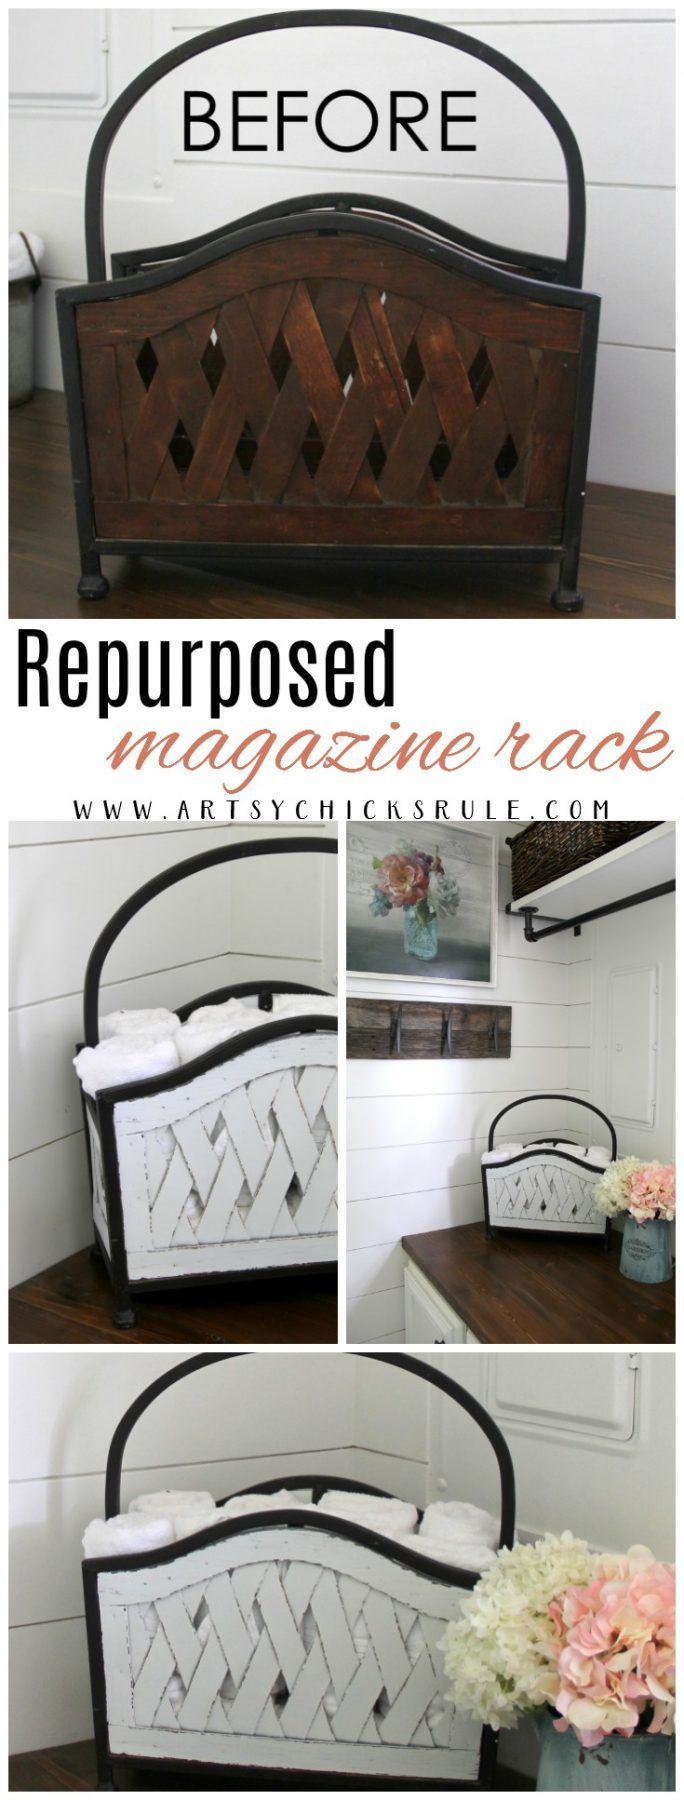 best 620 repurpose recycle images on pinterest furniture my